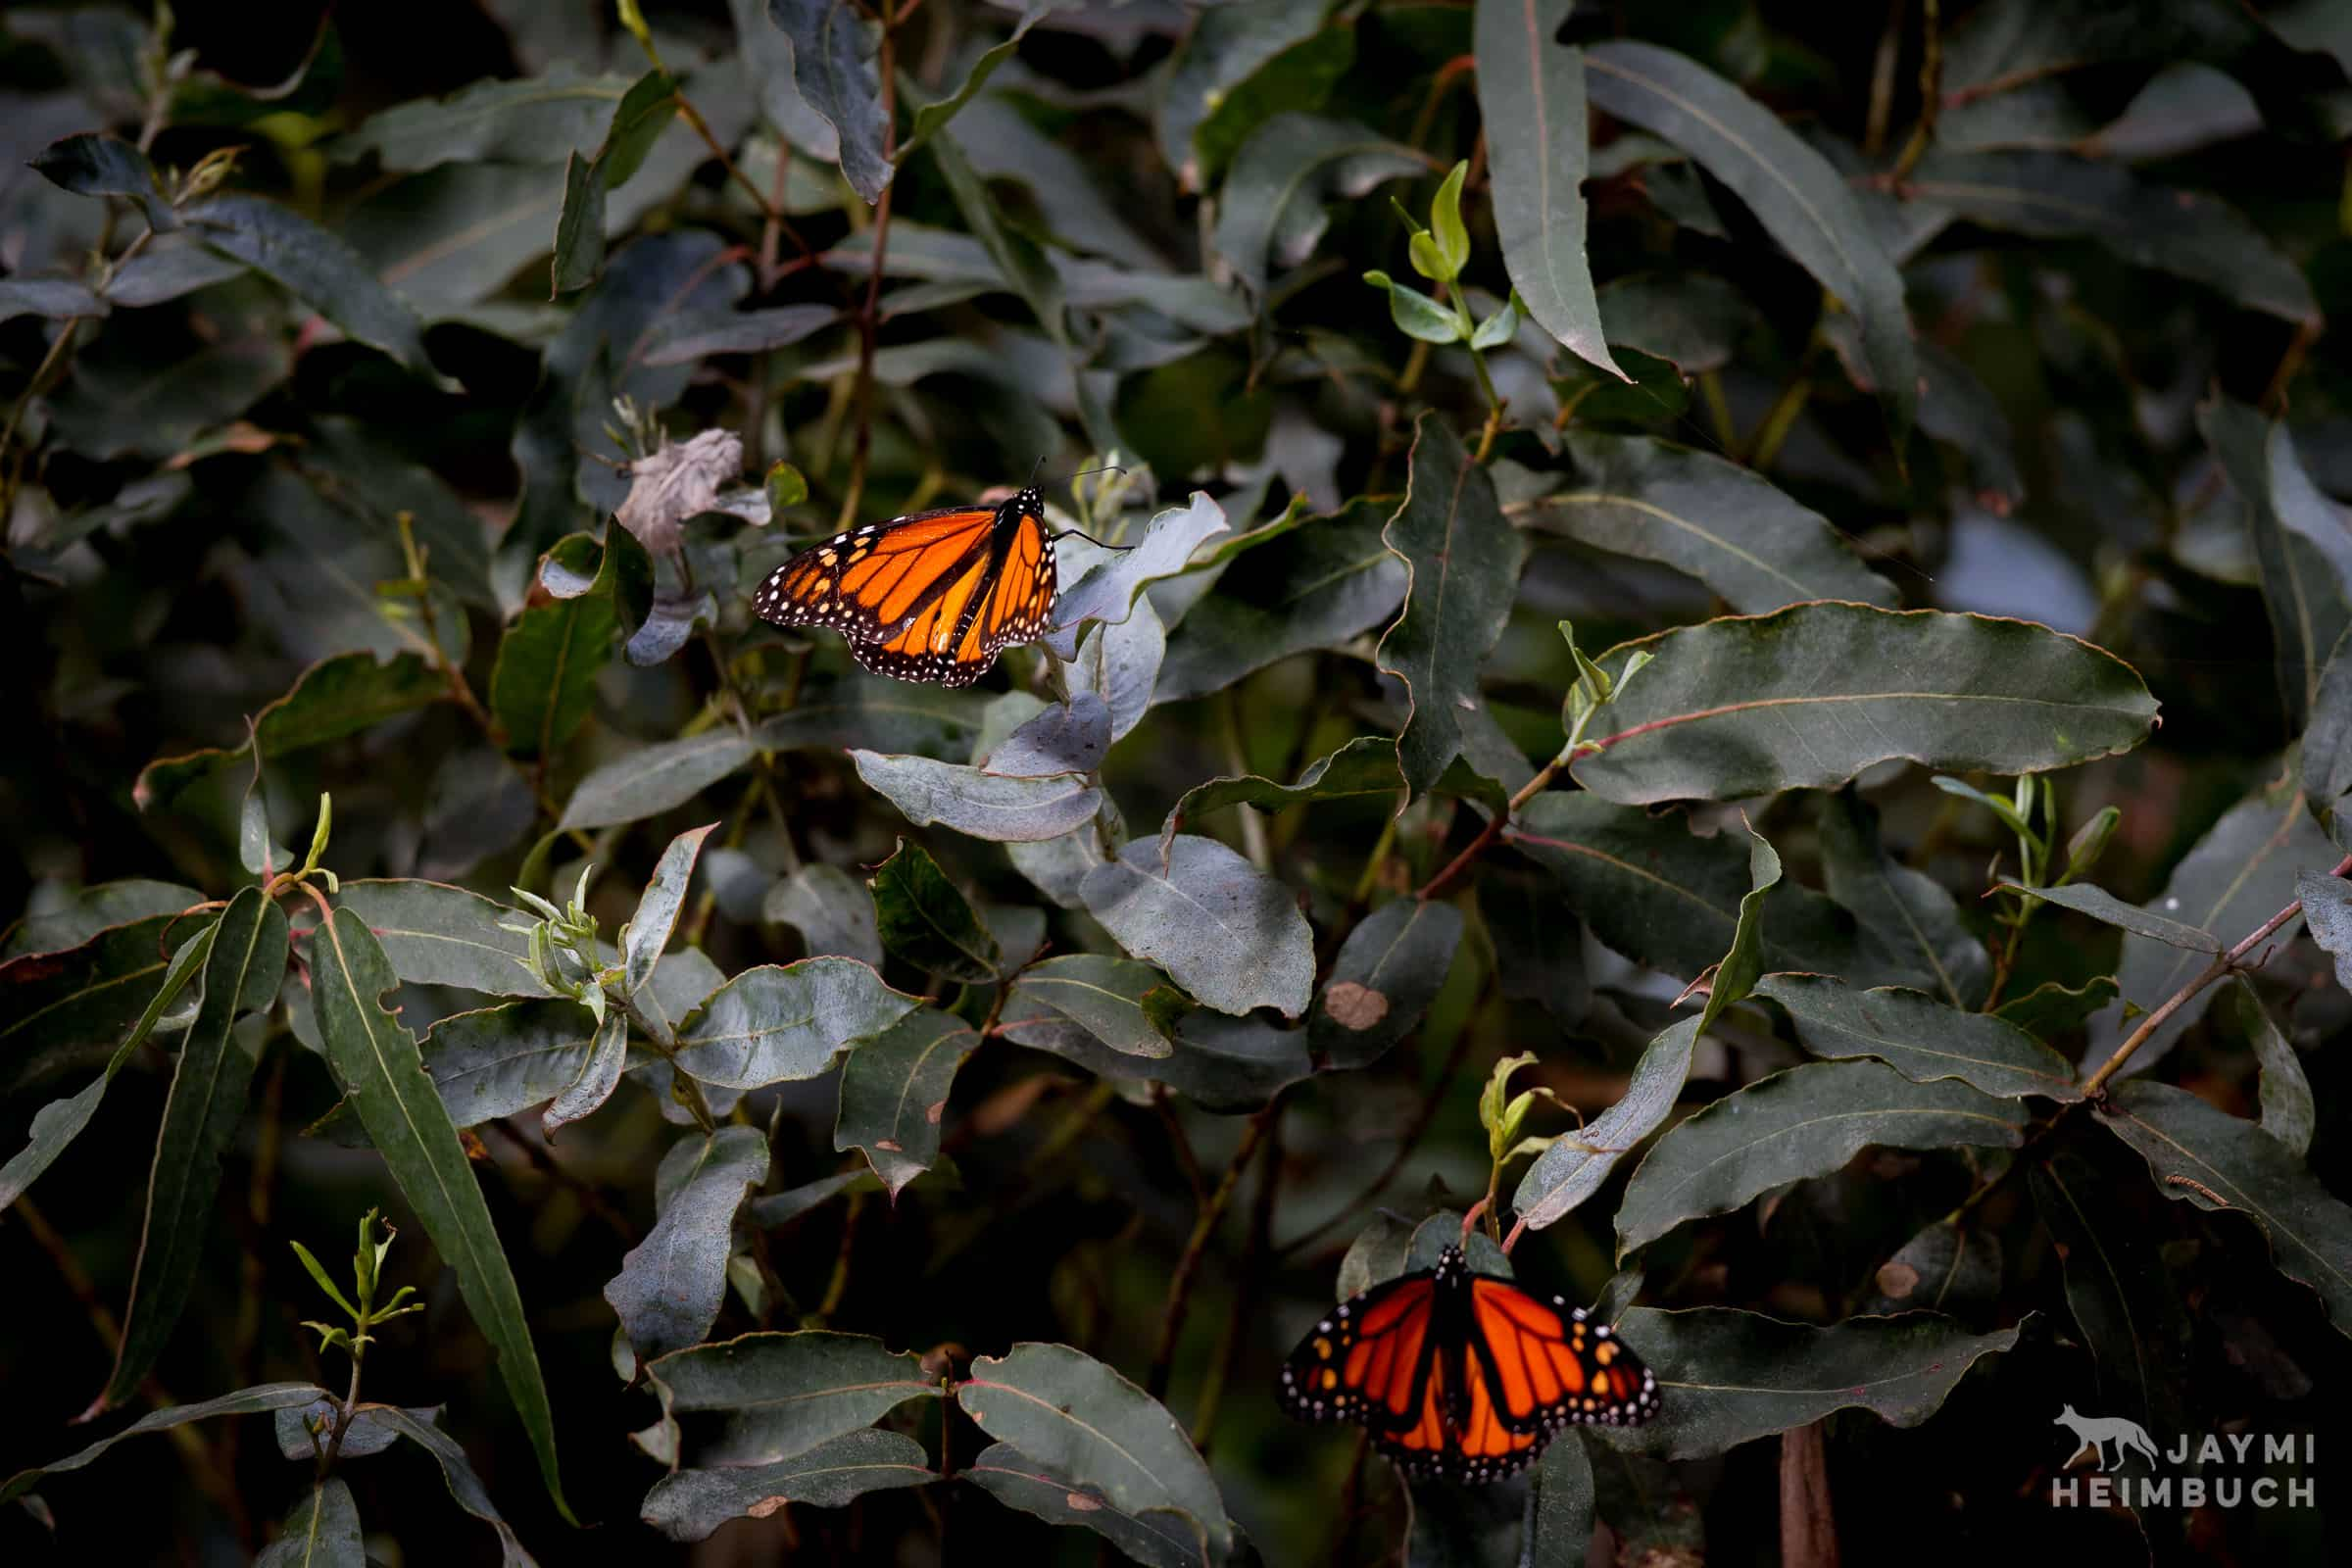 Monarch butterflies on leaves